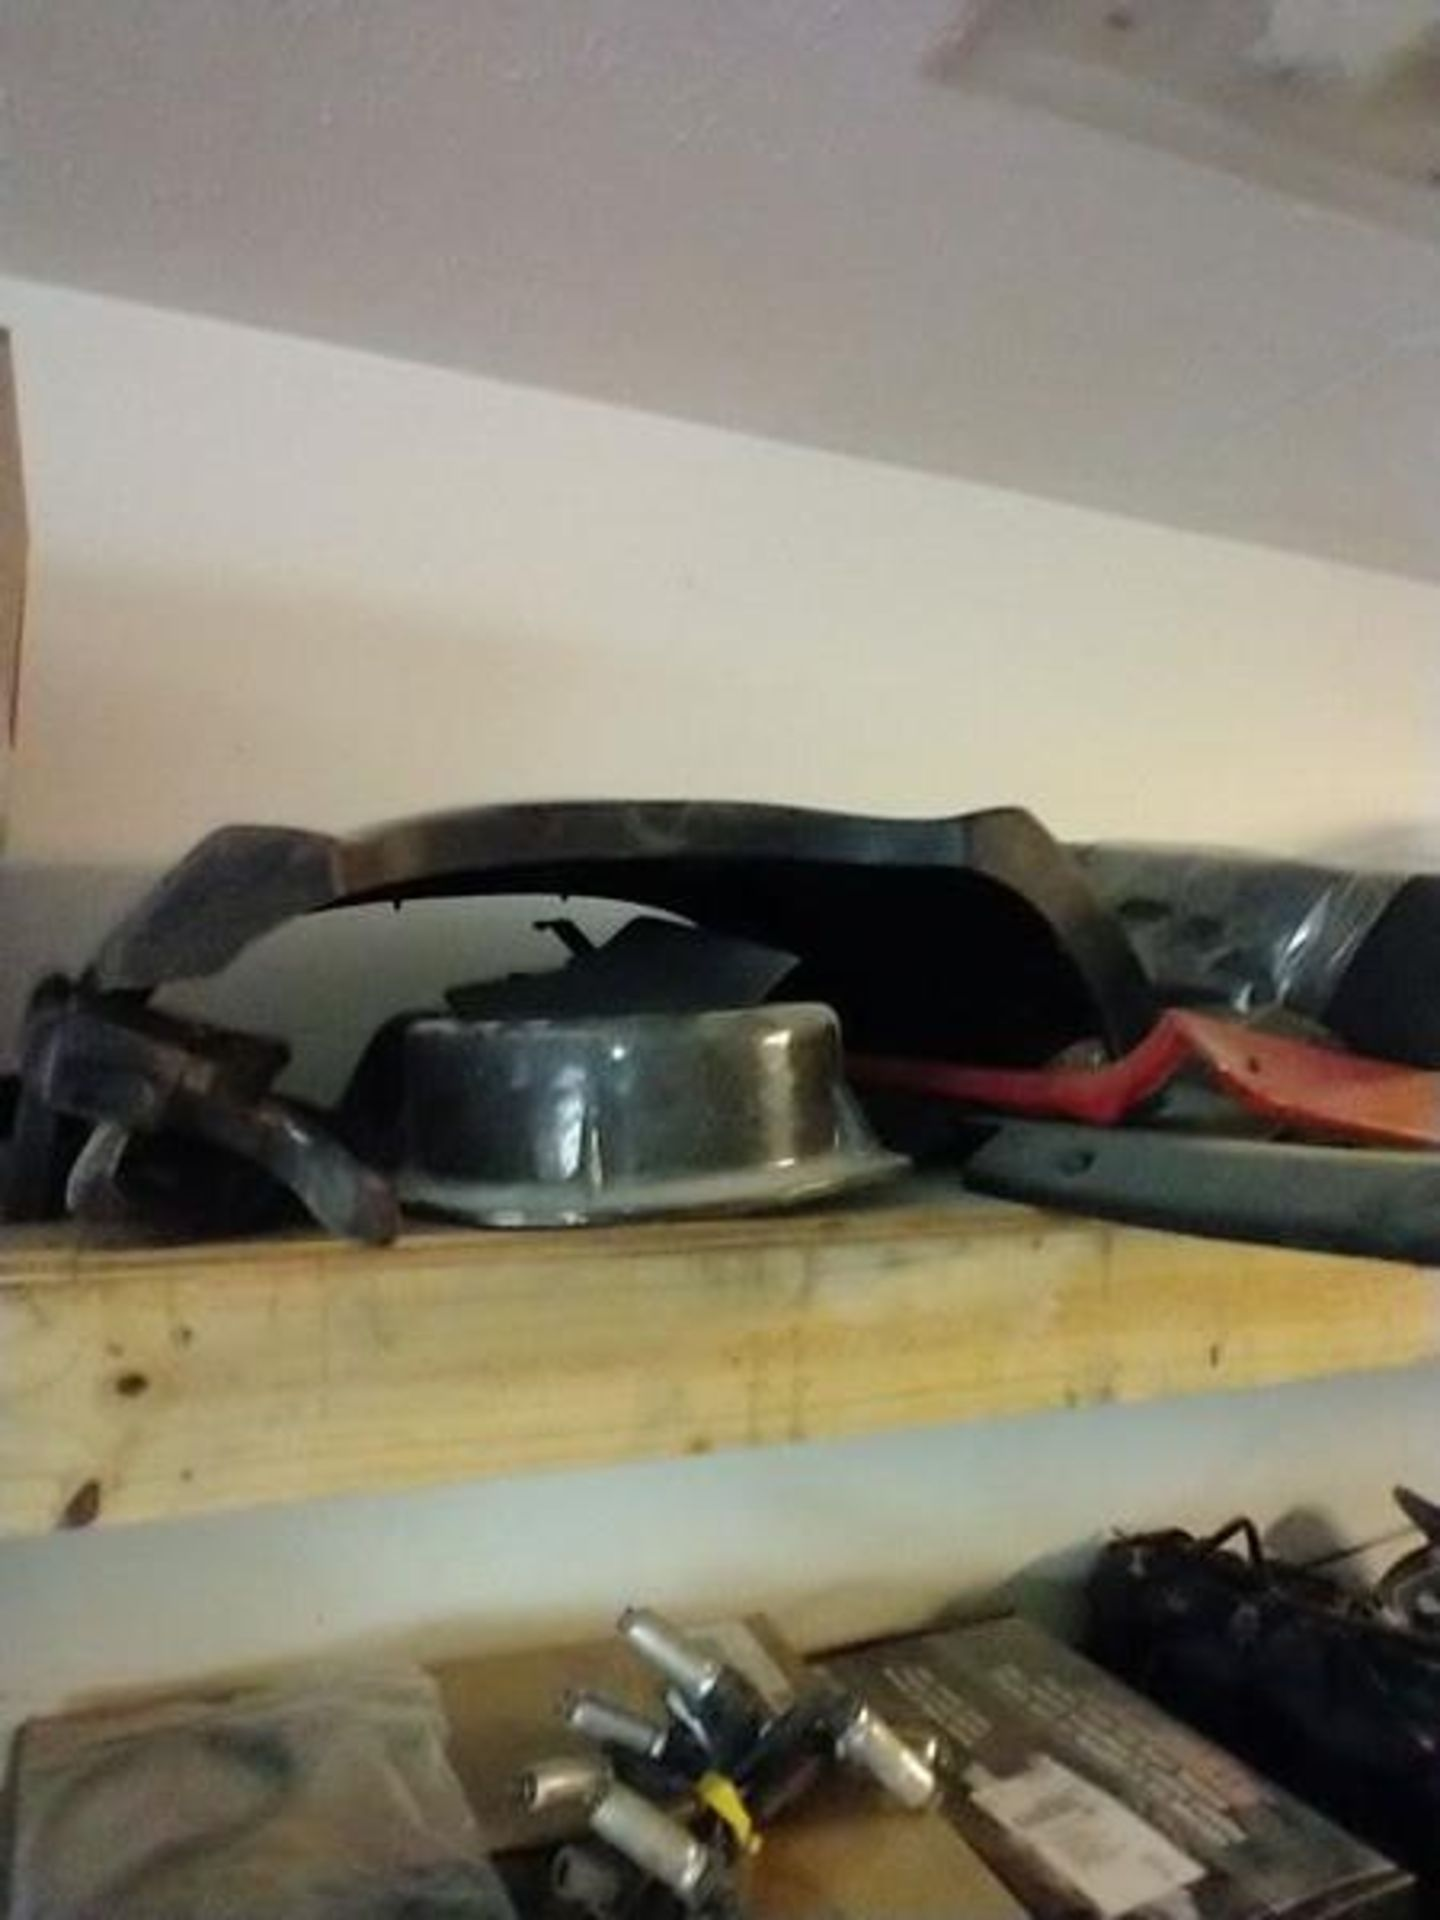 LOT OF ASSORTED CAR PARTS ON 2 SHELVES AND FLOOR - Image 6 of 23